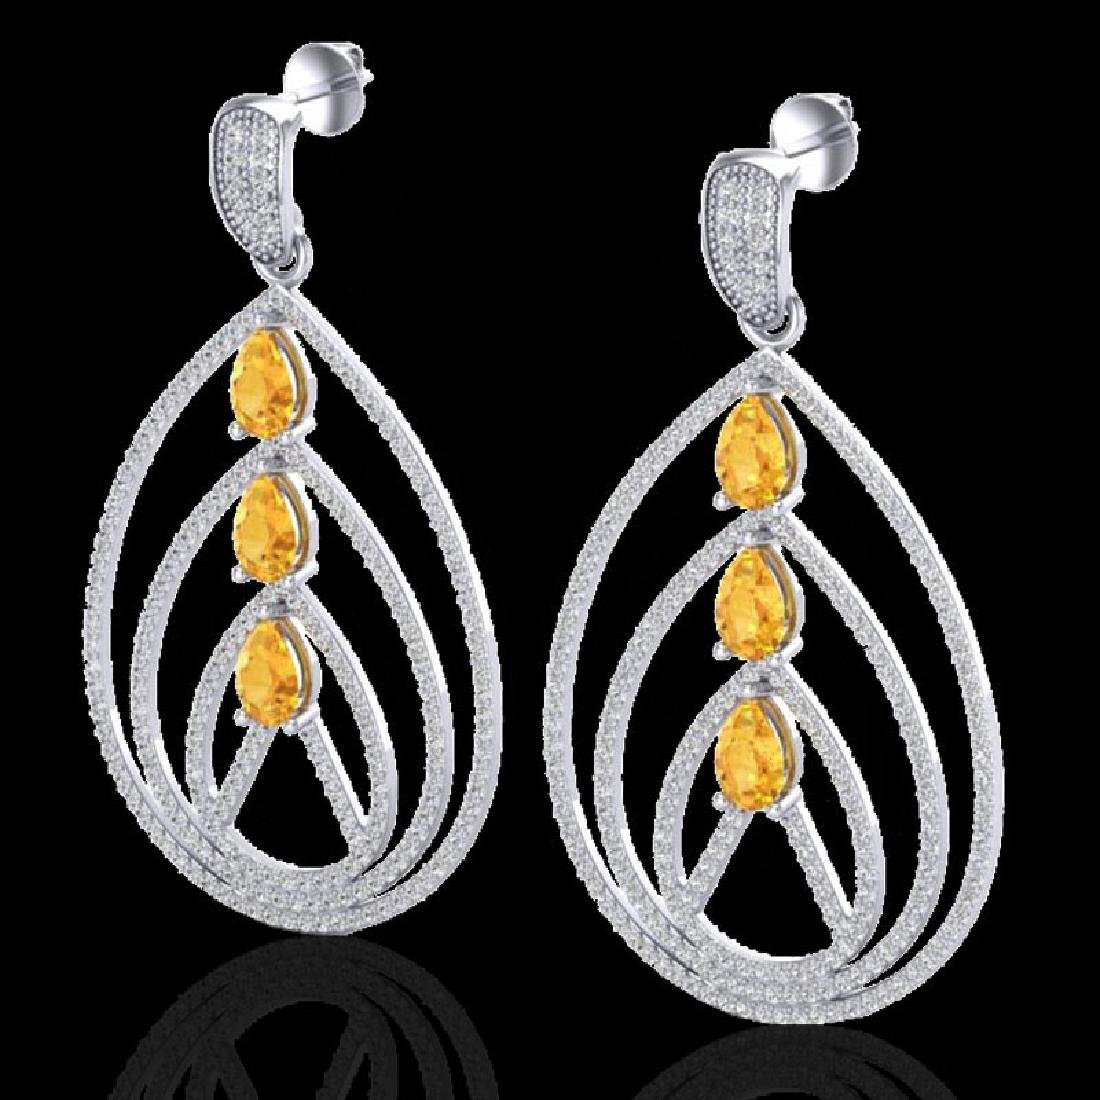 4 CTW Citrine & Micro Pave VS/SI Diamond Earrings 18K